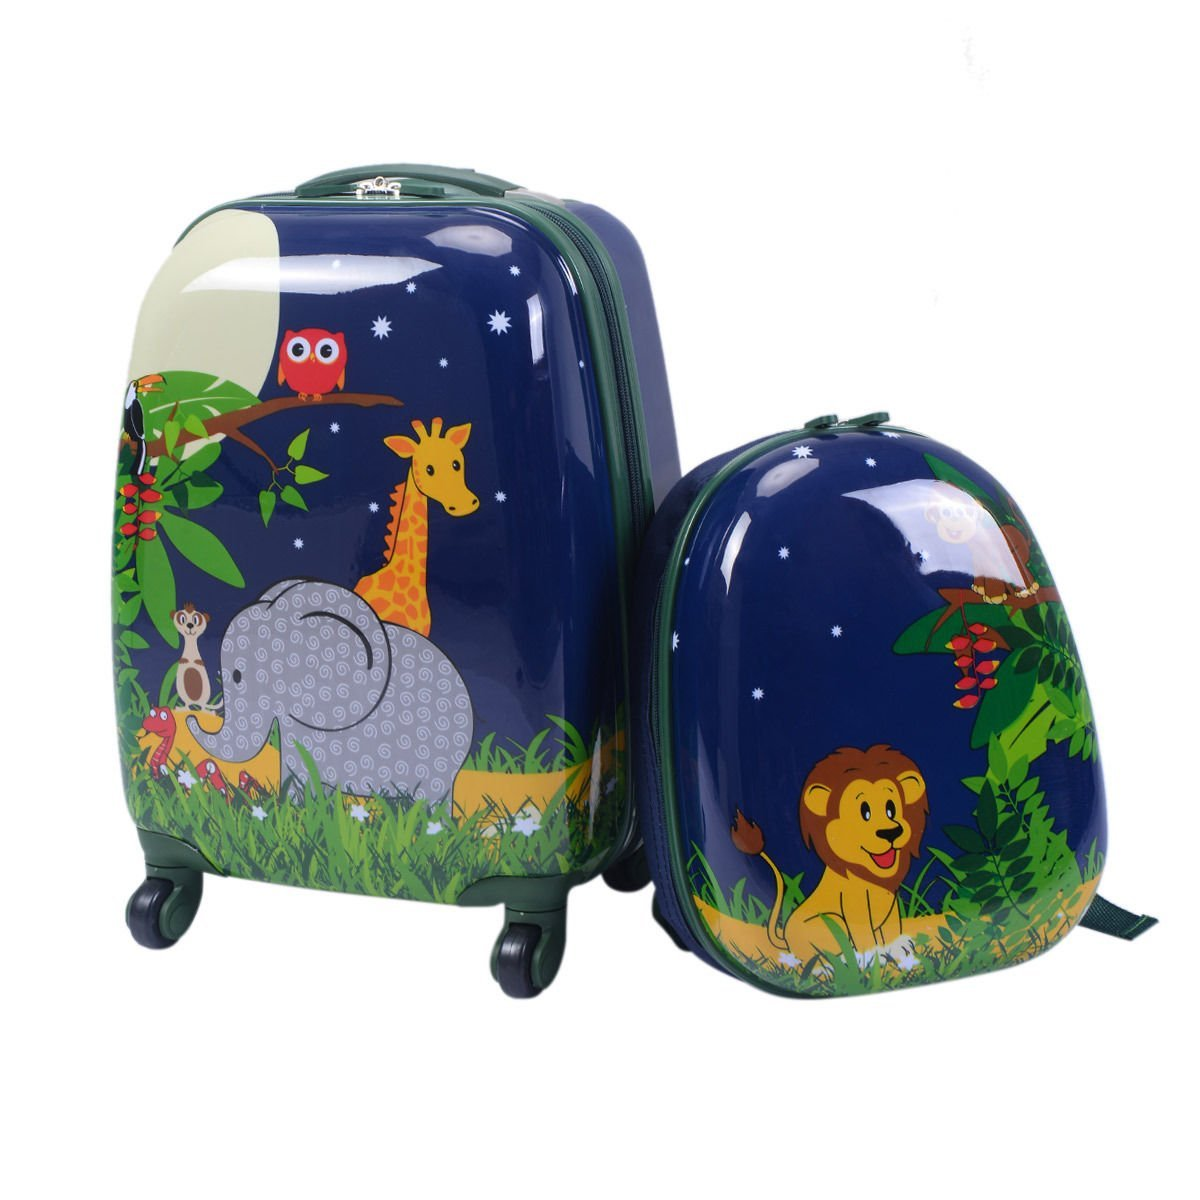 Set of 2 Pcs Kids School Luggage Penguin Shaped Suitcase /& Backpack With Ebook